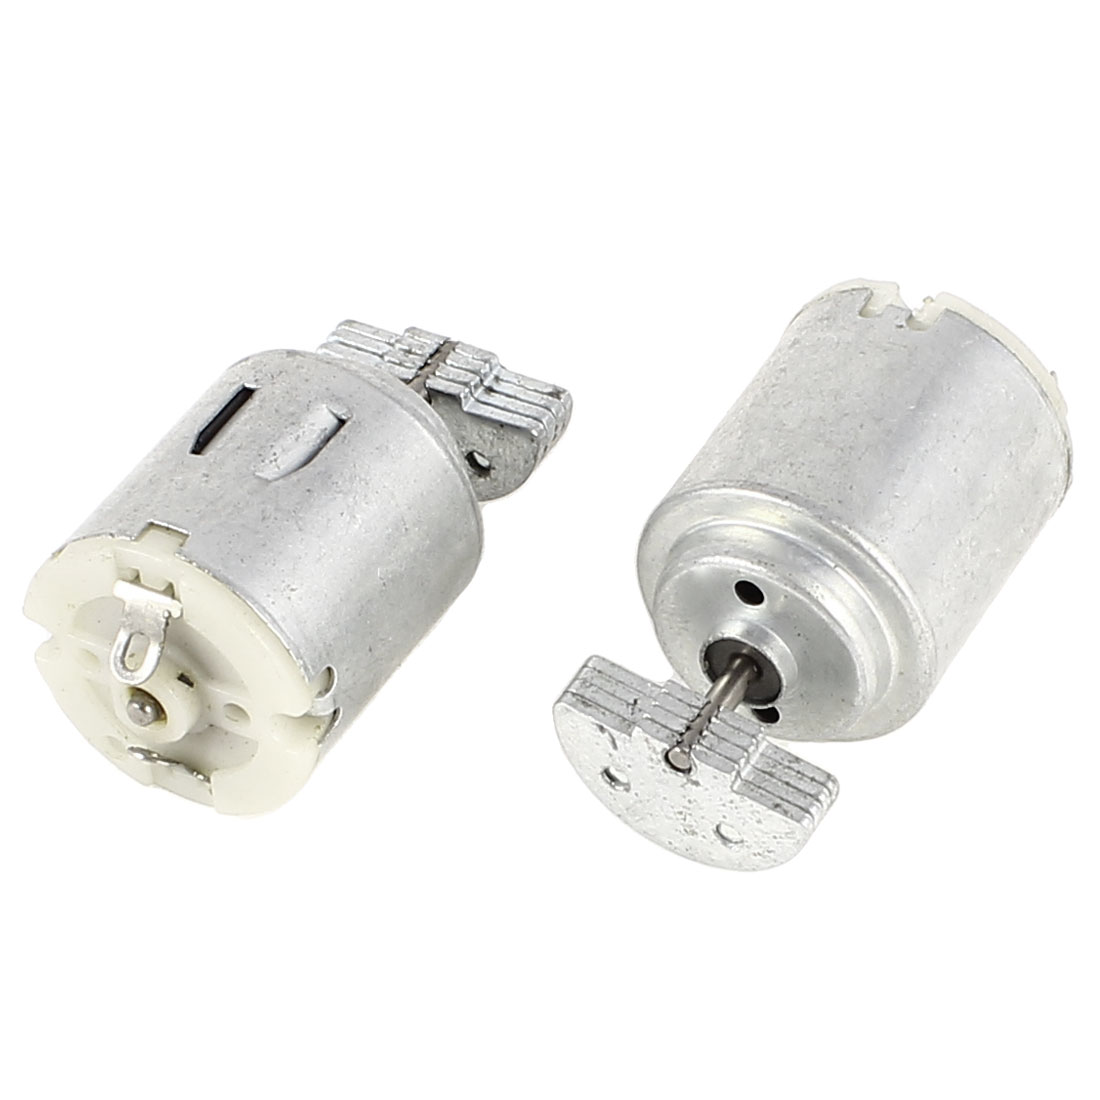 2 Pcs 25mm Dia Mini Vibration Vibrating Electric Motor DC 3-6V 12000RPM 280 Model for Toys